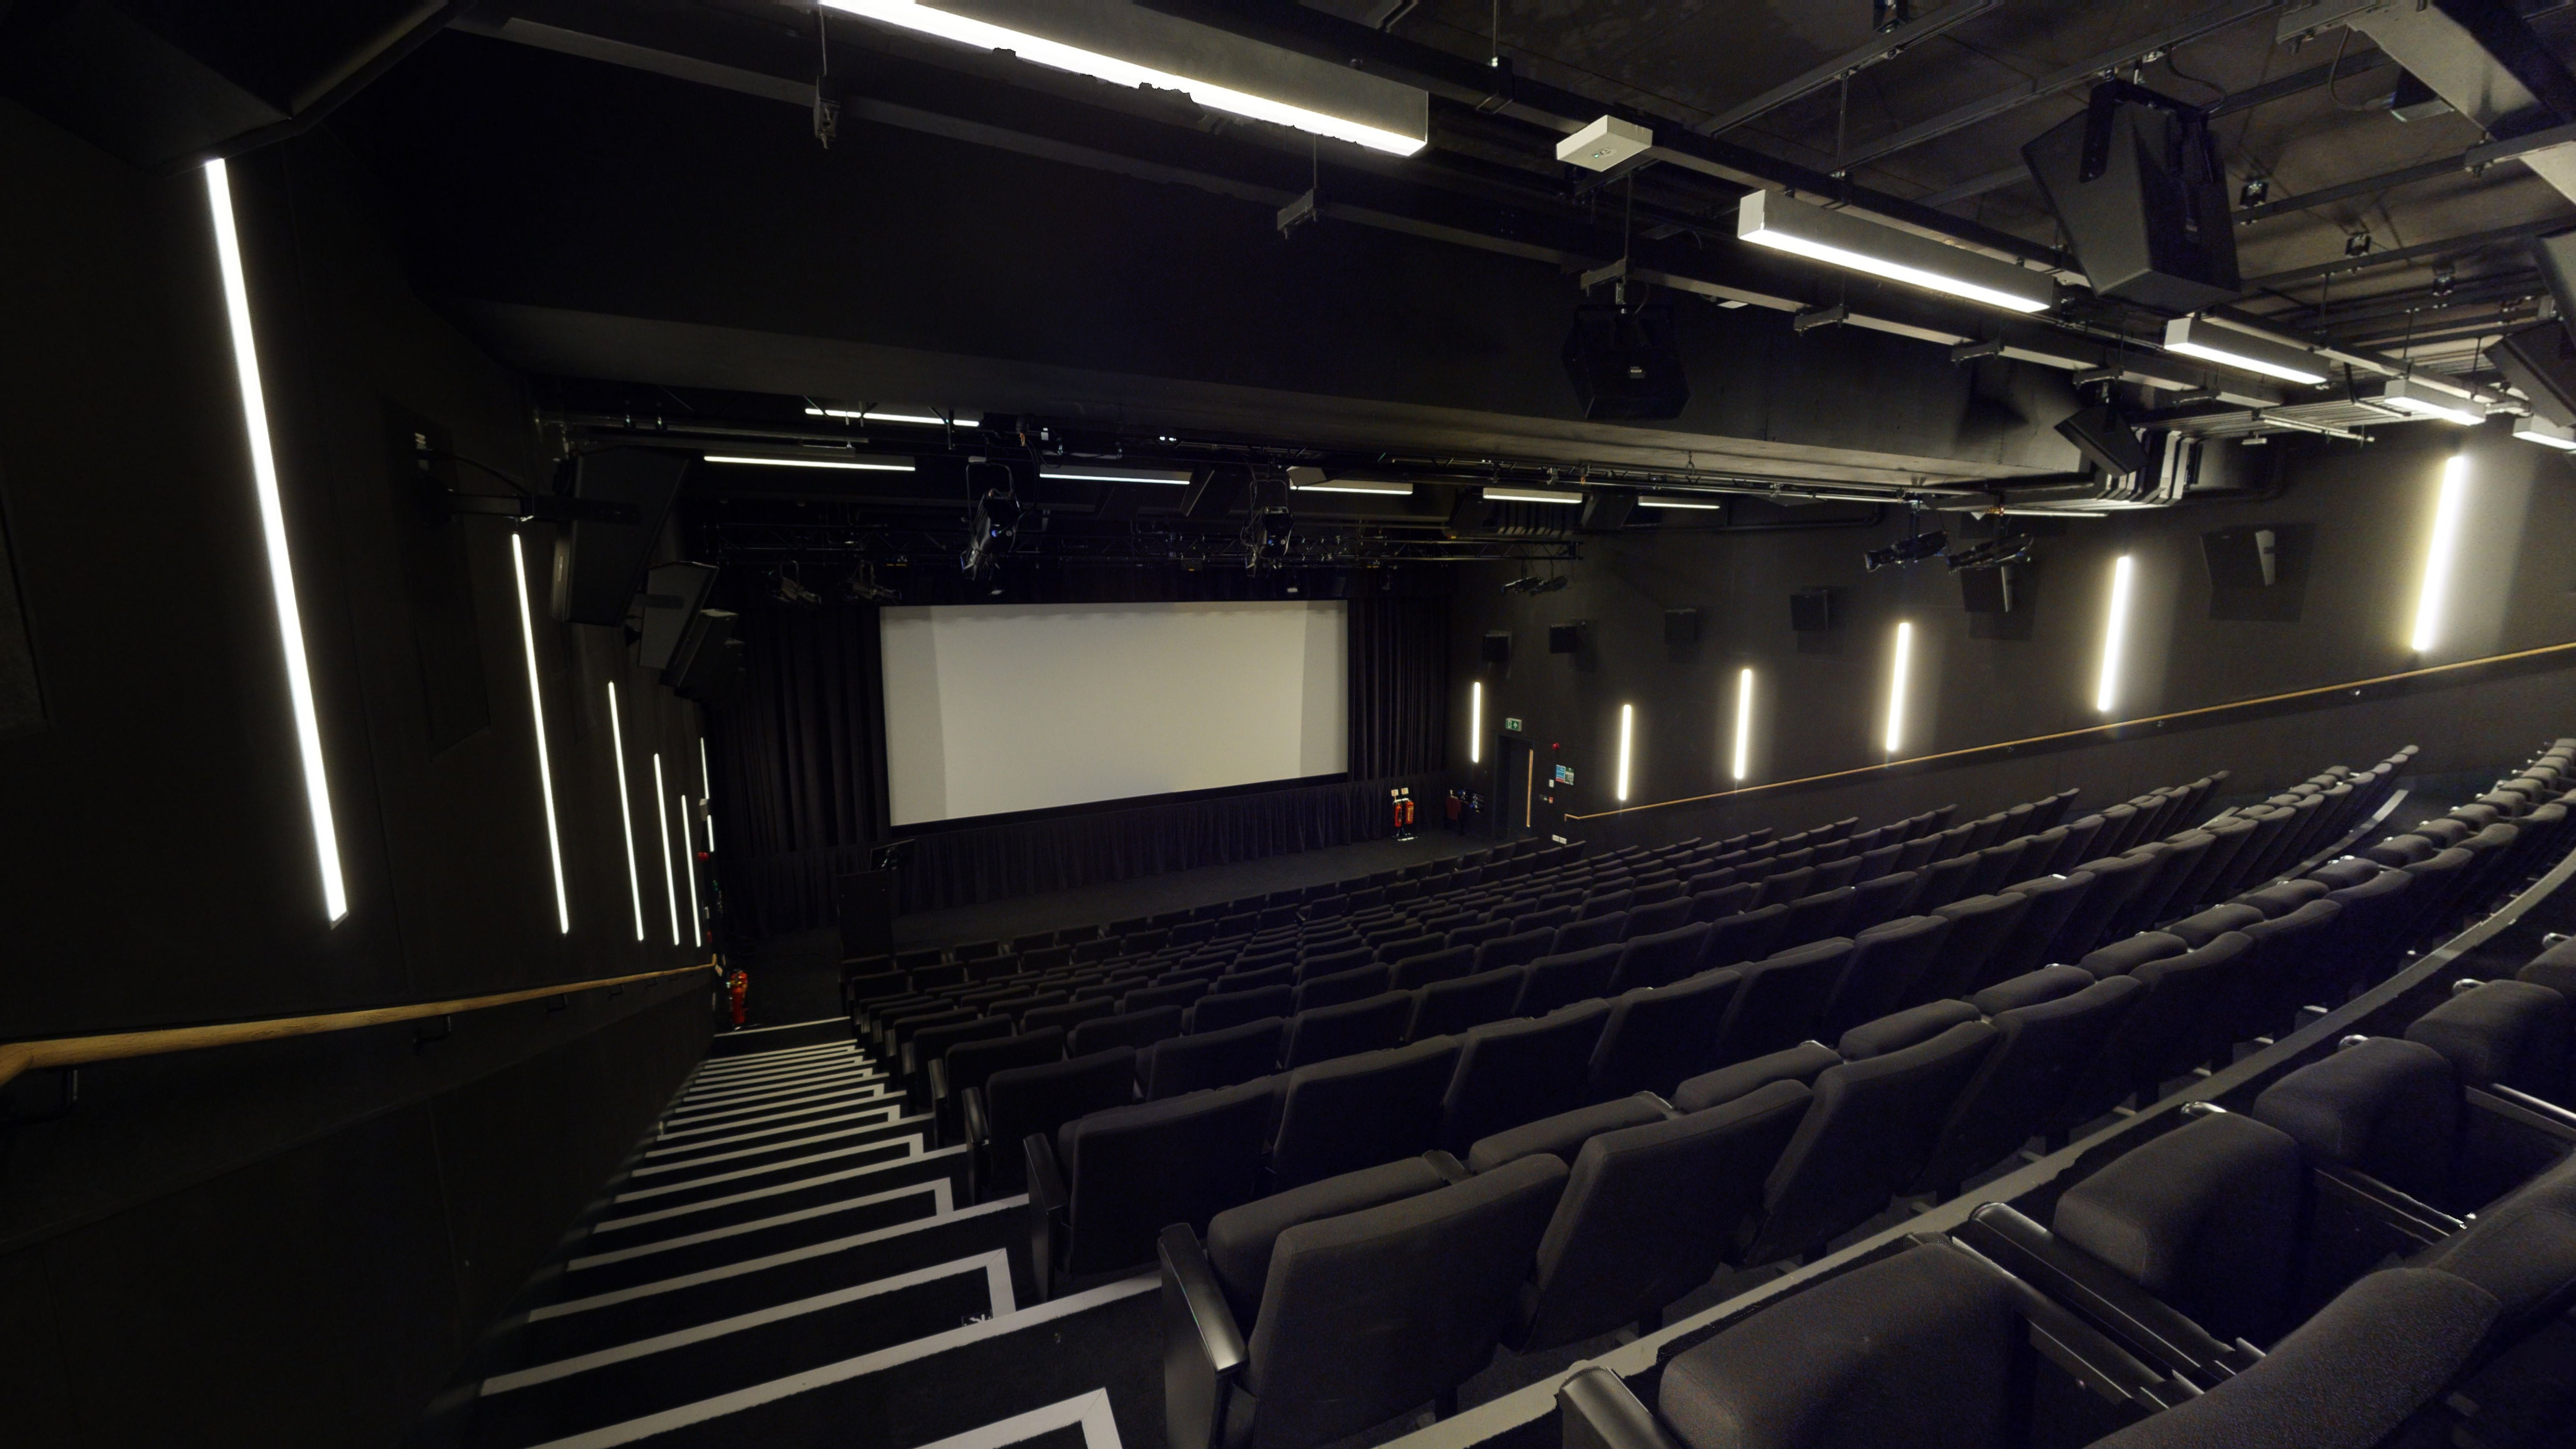 Commercial style cinema with 220 seats and a large projection screen at the front.